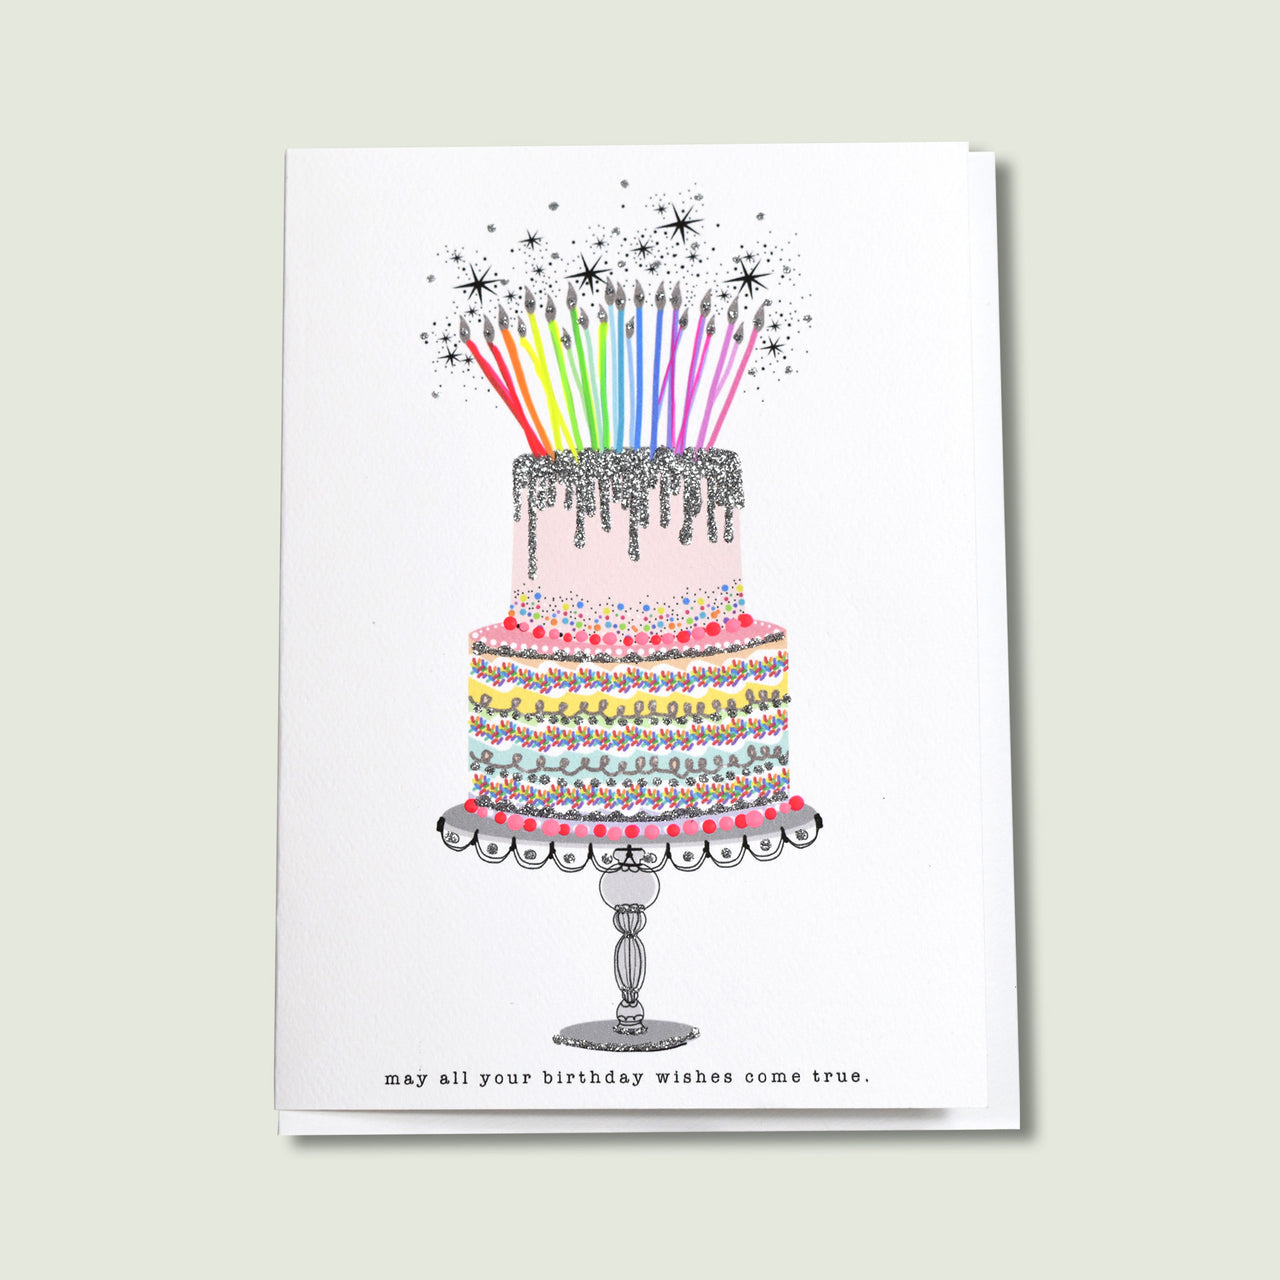 May All Your Birthday Wishes Come True Verrier Handcrafted